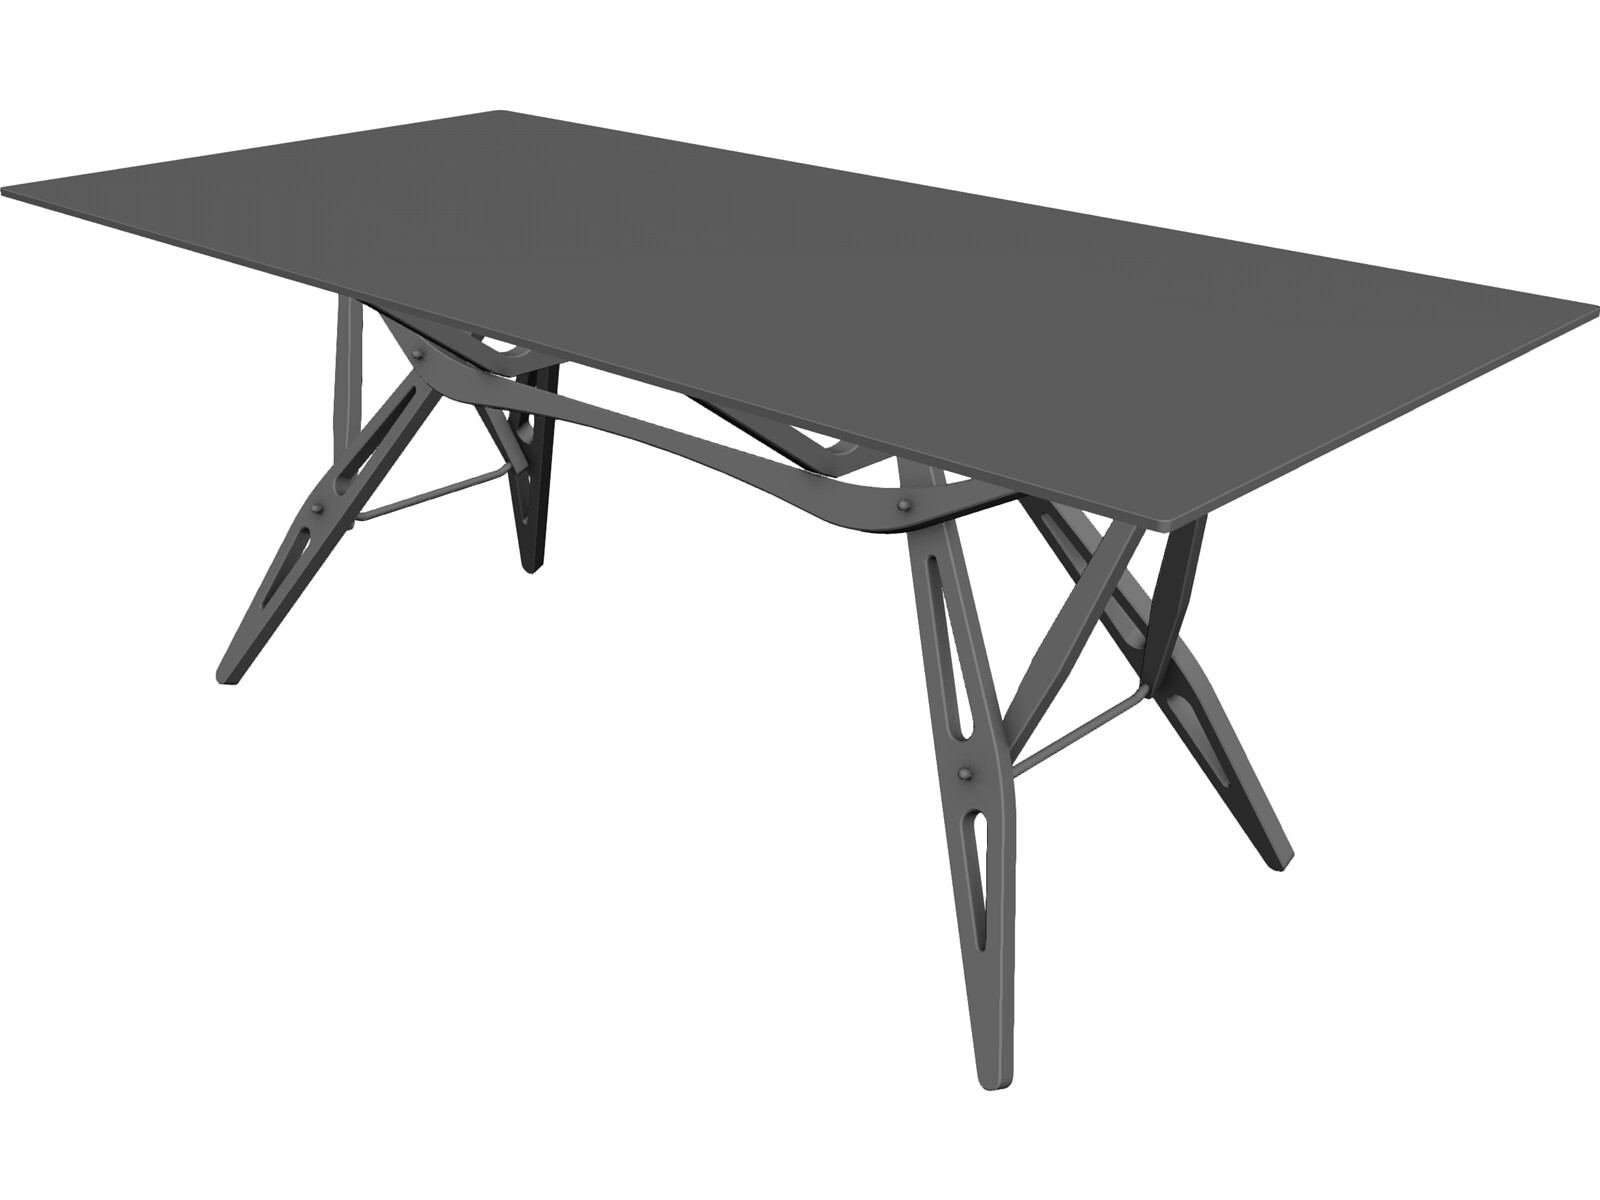 Zanotta reale table 3d model 3d cad browser zanotta reale table 3d model greentooth Gallery